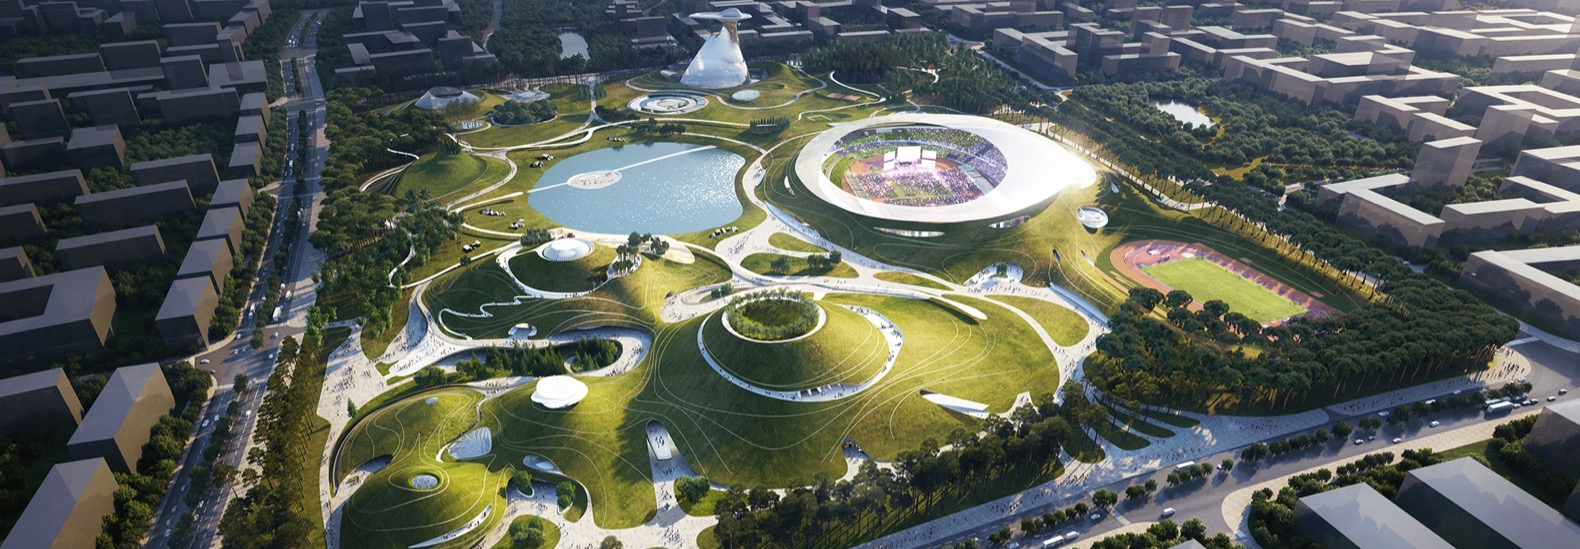 MAD Brings Surreal Sports Complex With Vast Green Roof To